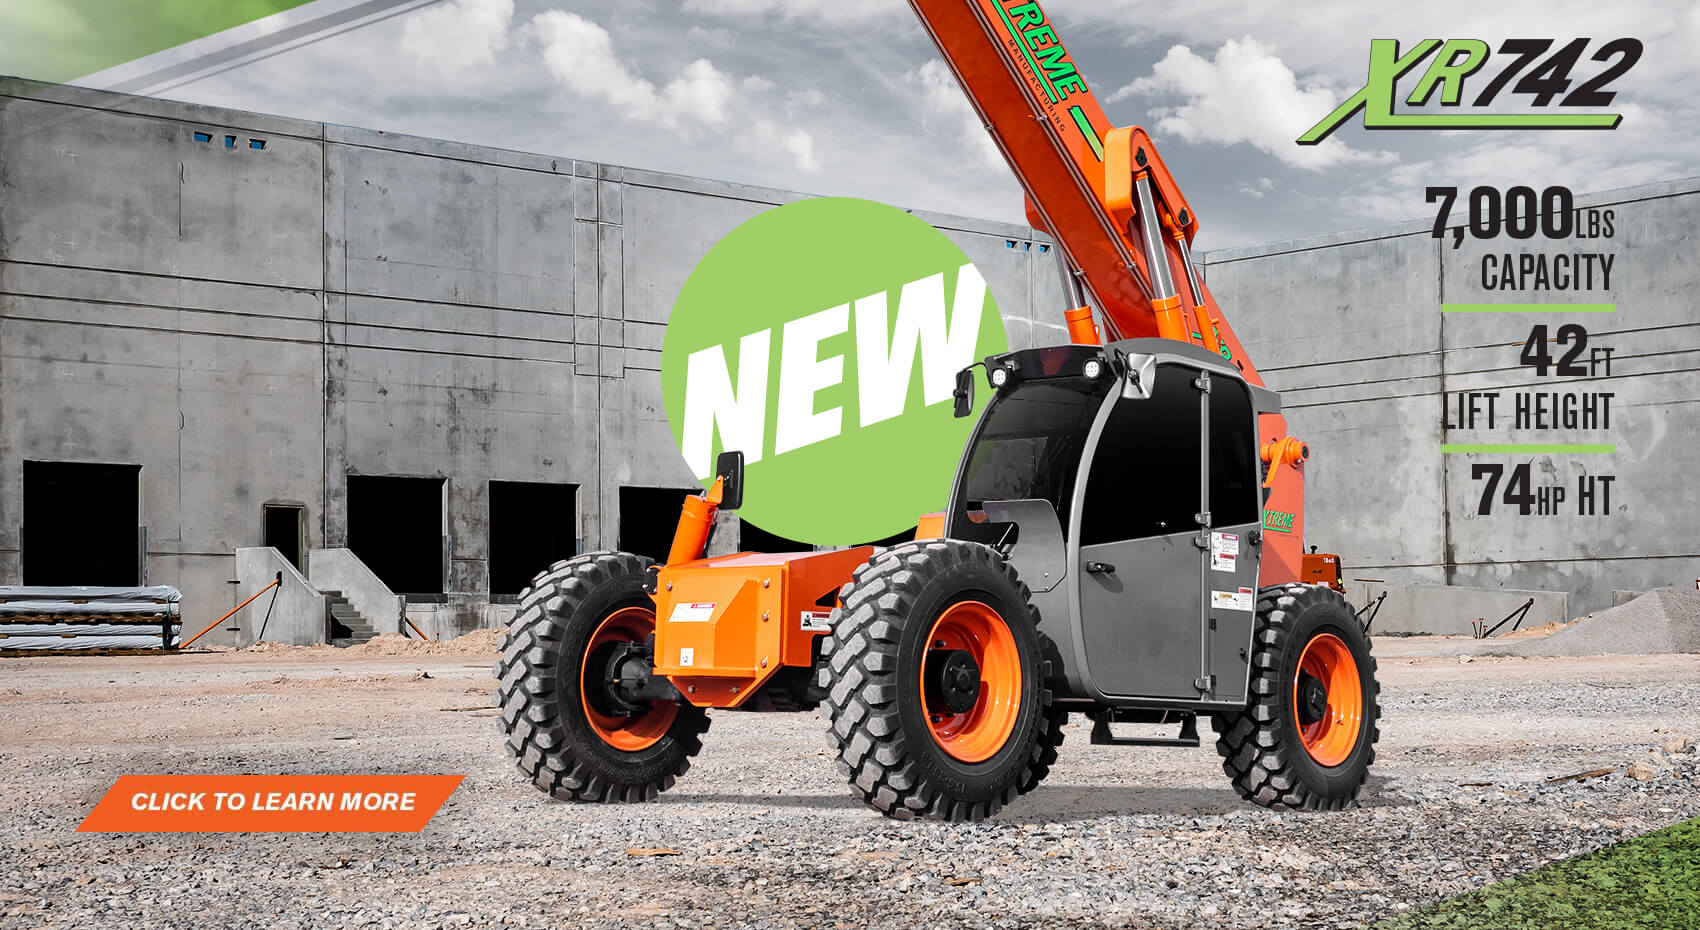 Heavy Equipment For Construction | Xtreme Manufacturing